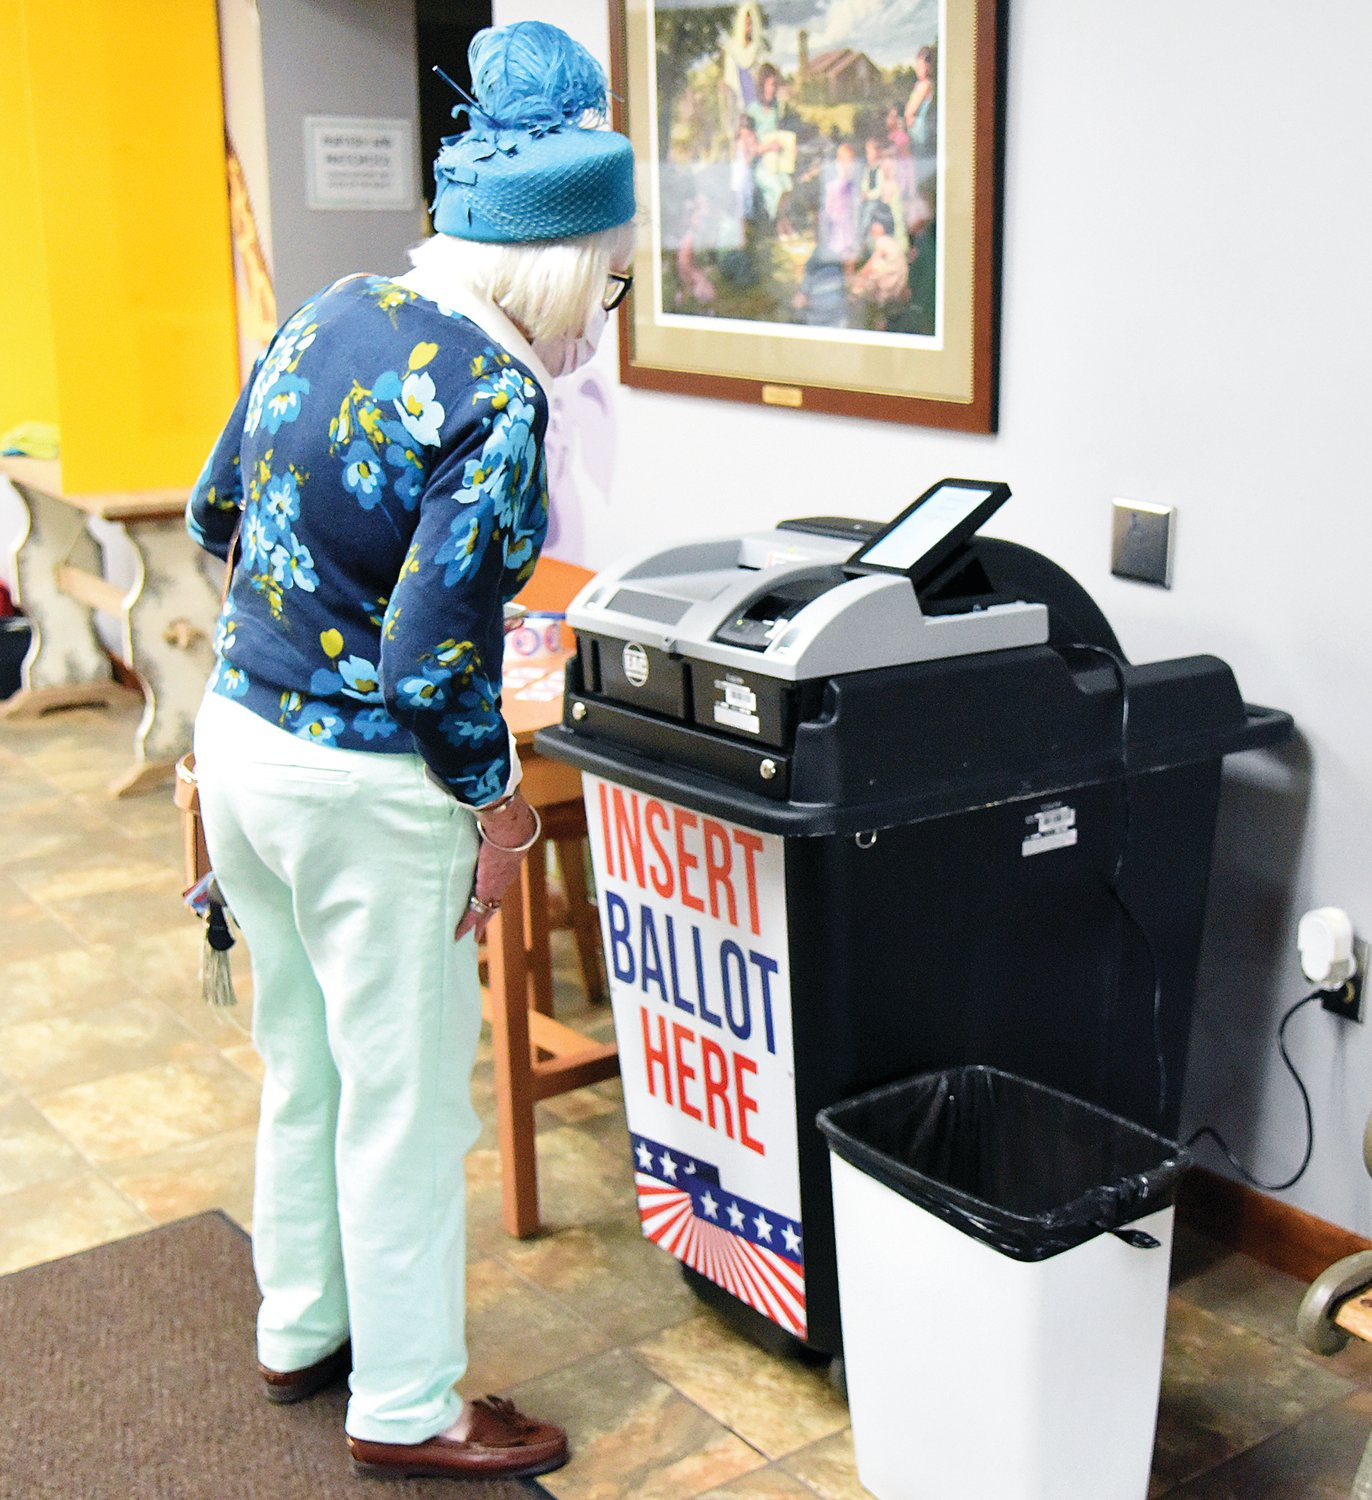 Chelsea Kehde, the 94th voter in Ward 2, makes sure her ballot is accepted Tuesday at First Baptist Church. At 1:37 p.m. there were 97 votes cast in the Municipal Election at First Baptist.